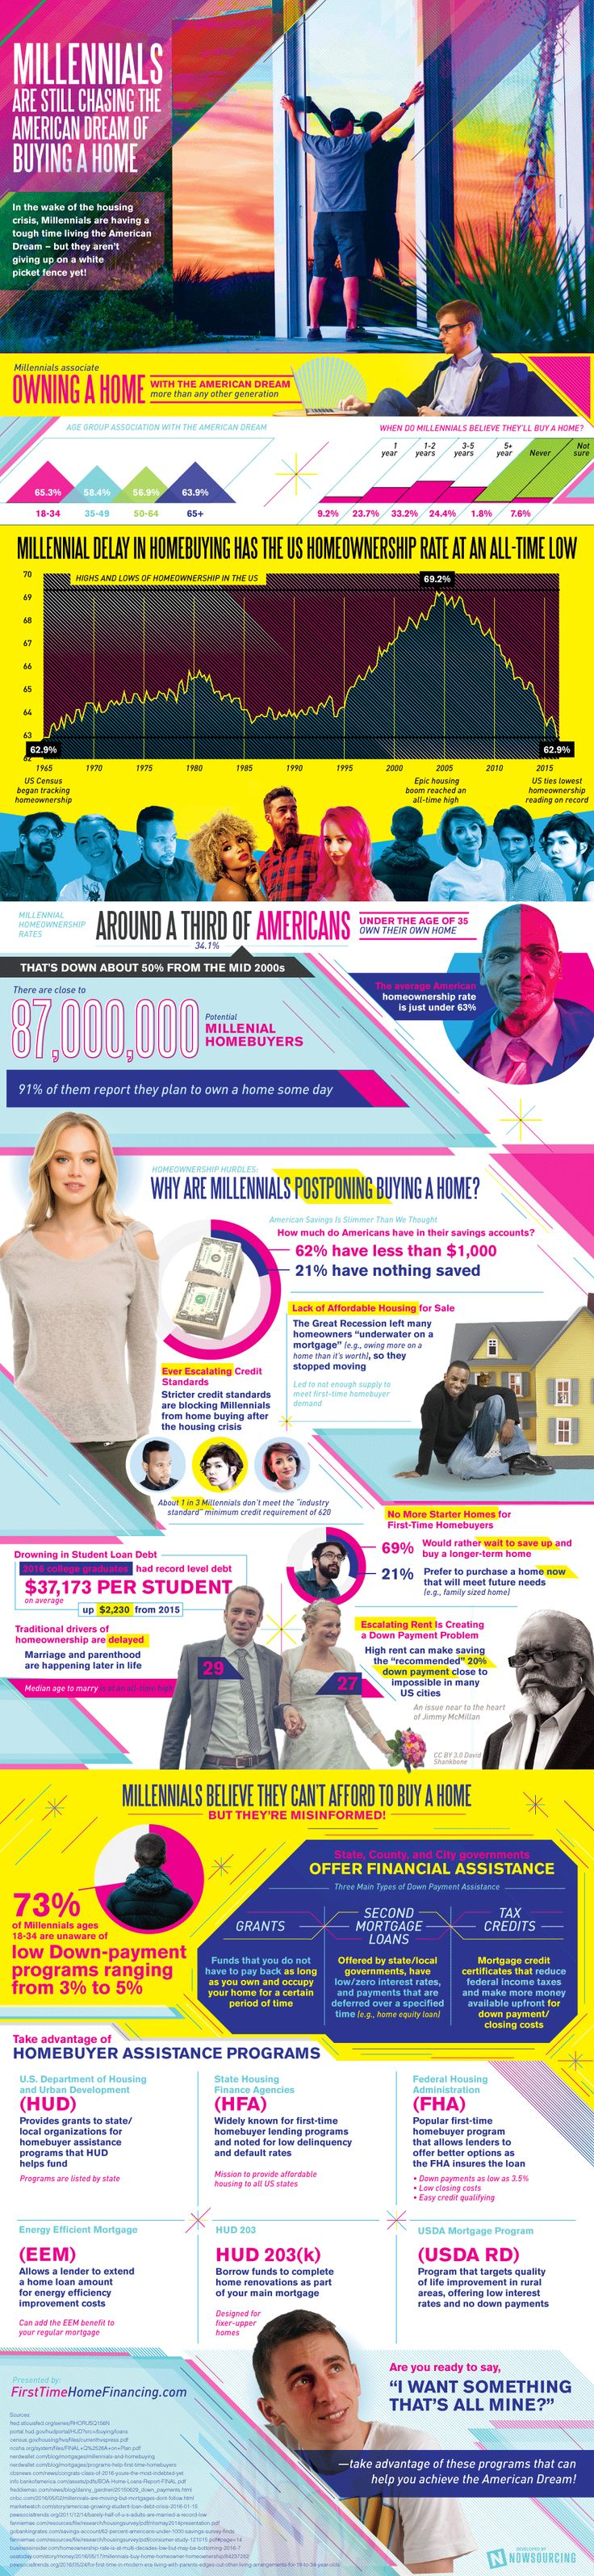 Infographic: Millennial Homebuying #Infographic #Millennial #RealEstate